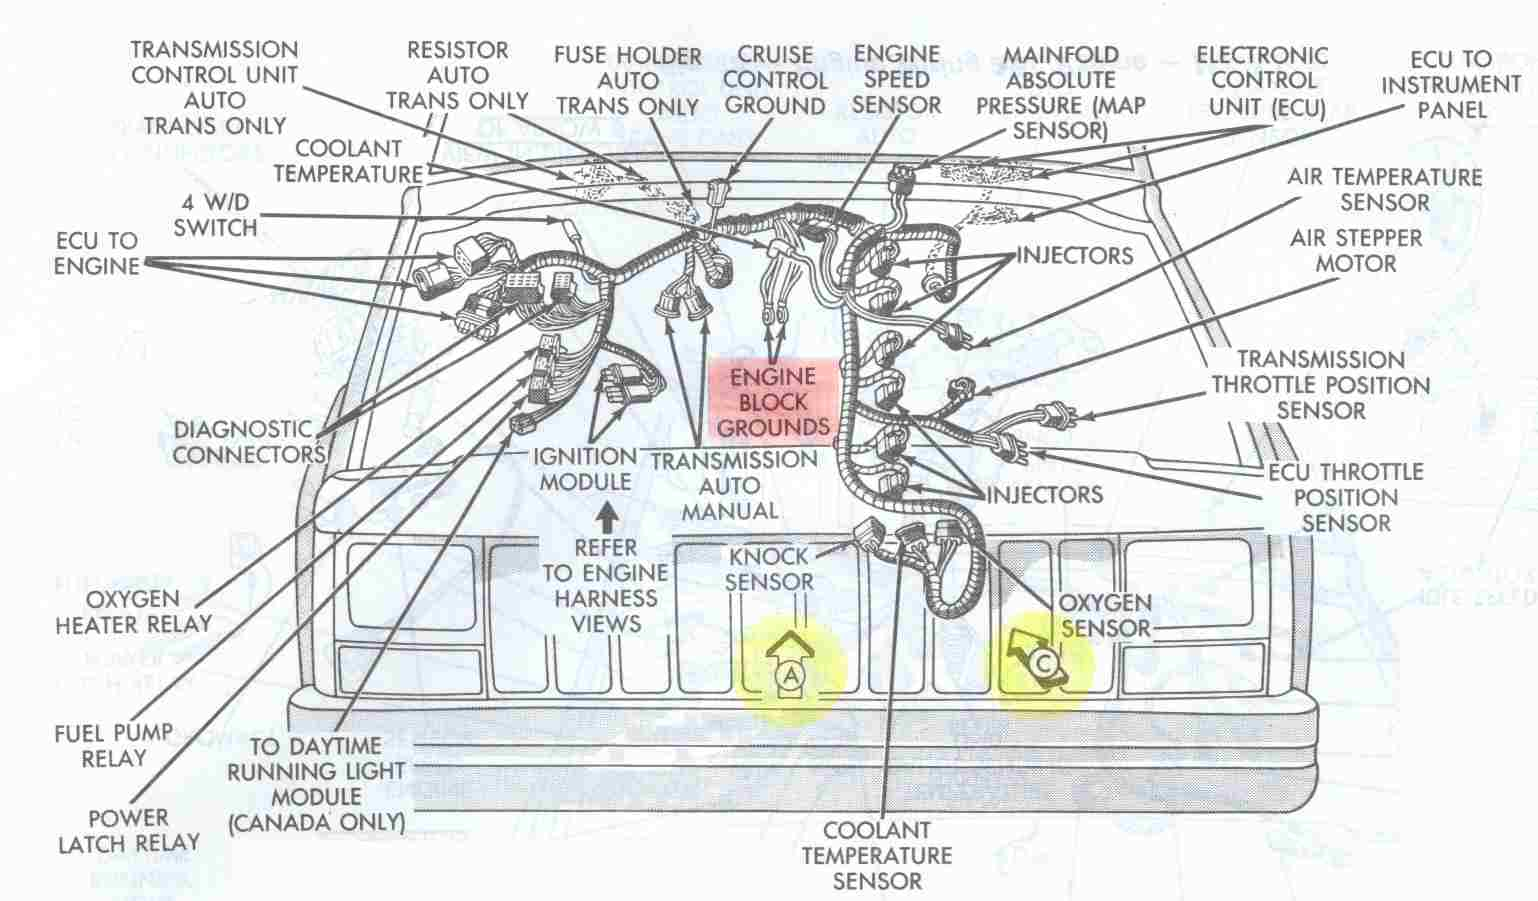 jeep cherokee electrical diagnosing erratic behavior of engine 98 jeep cherokee wiring diagram engine bay schematic showing major electrical ground points for 4 0l jeep cherokee engines